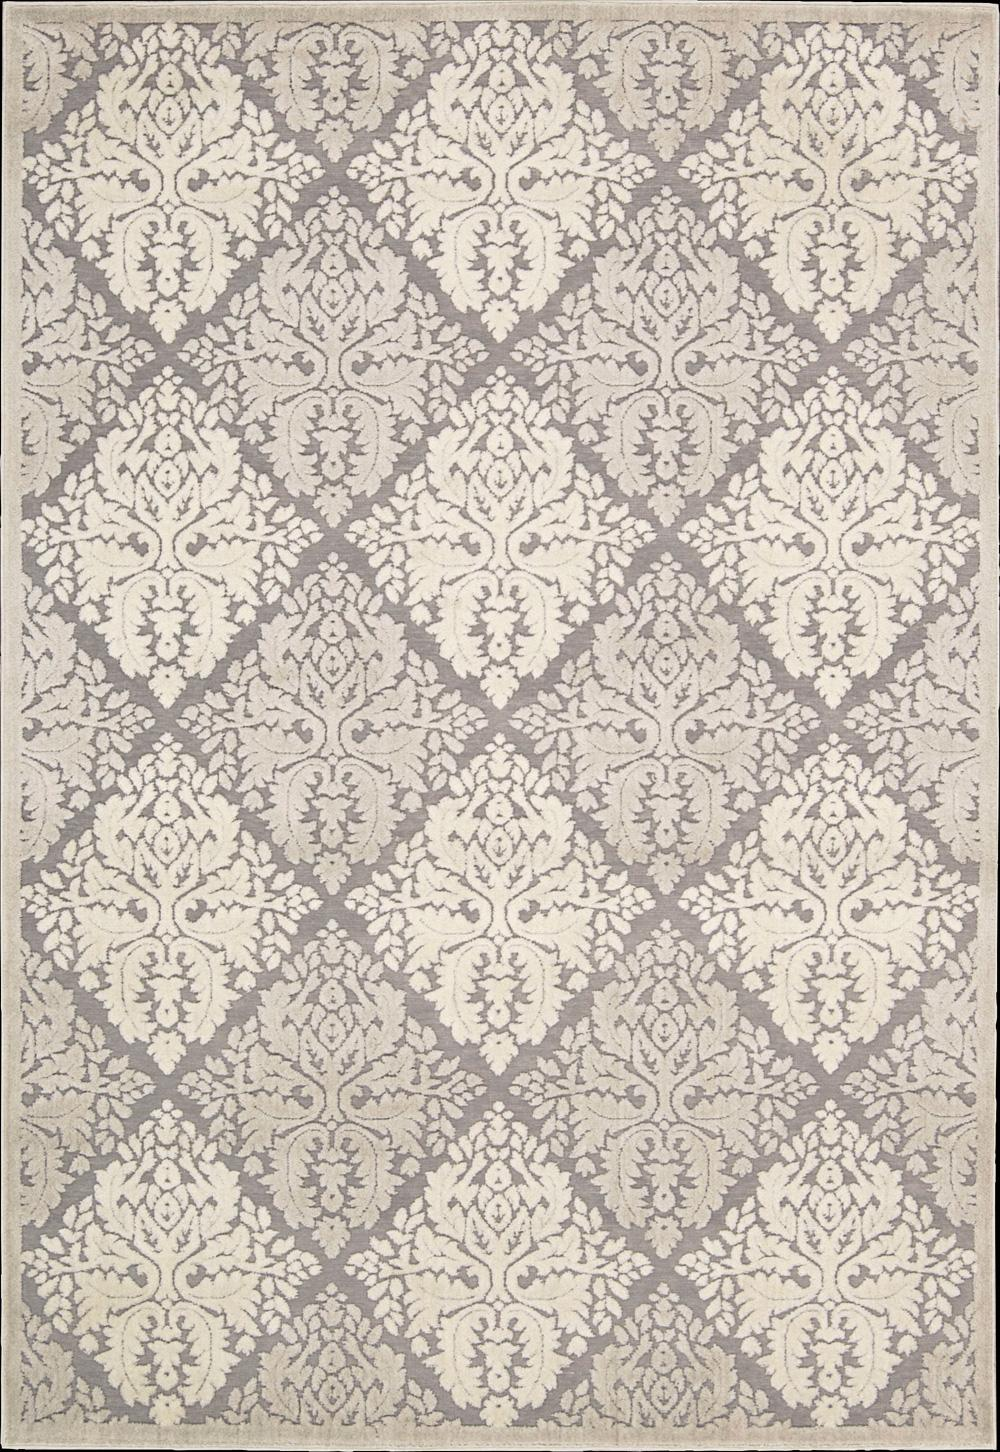 "Nourison Graphic Illusions Area Rug 7'9"" x 10'10"" - Item Number: 13149"